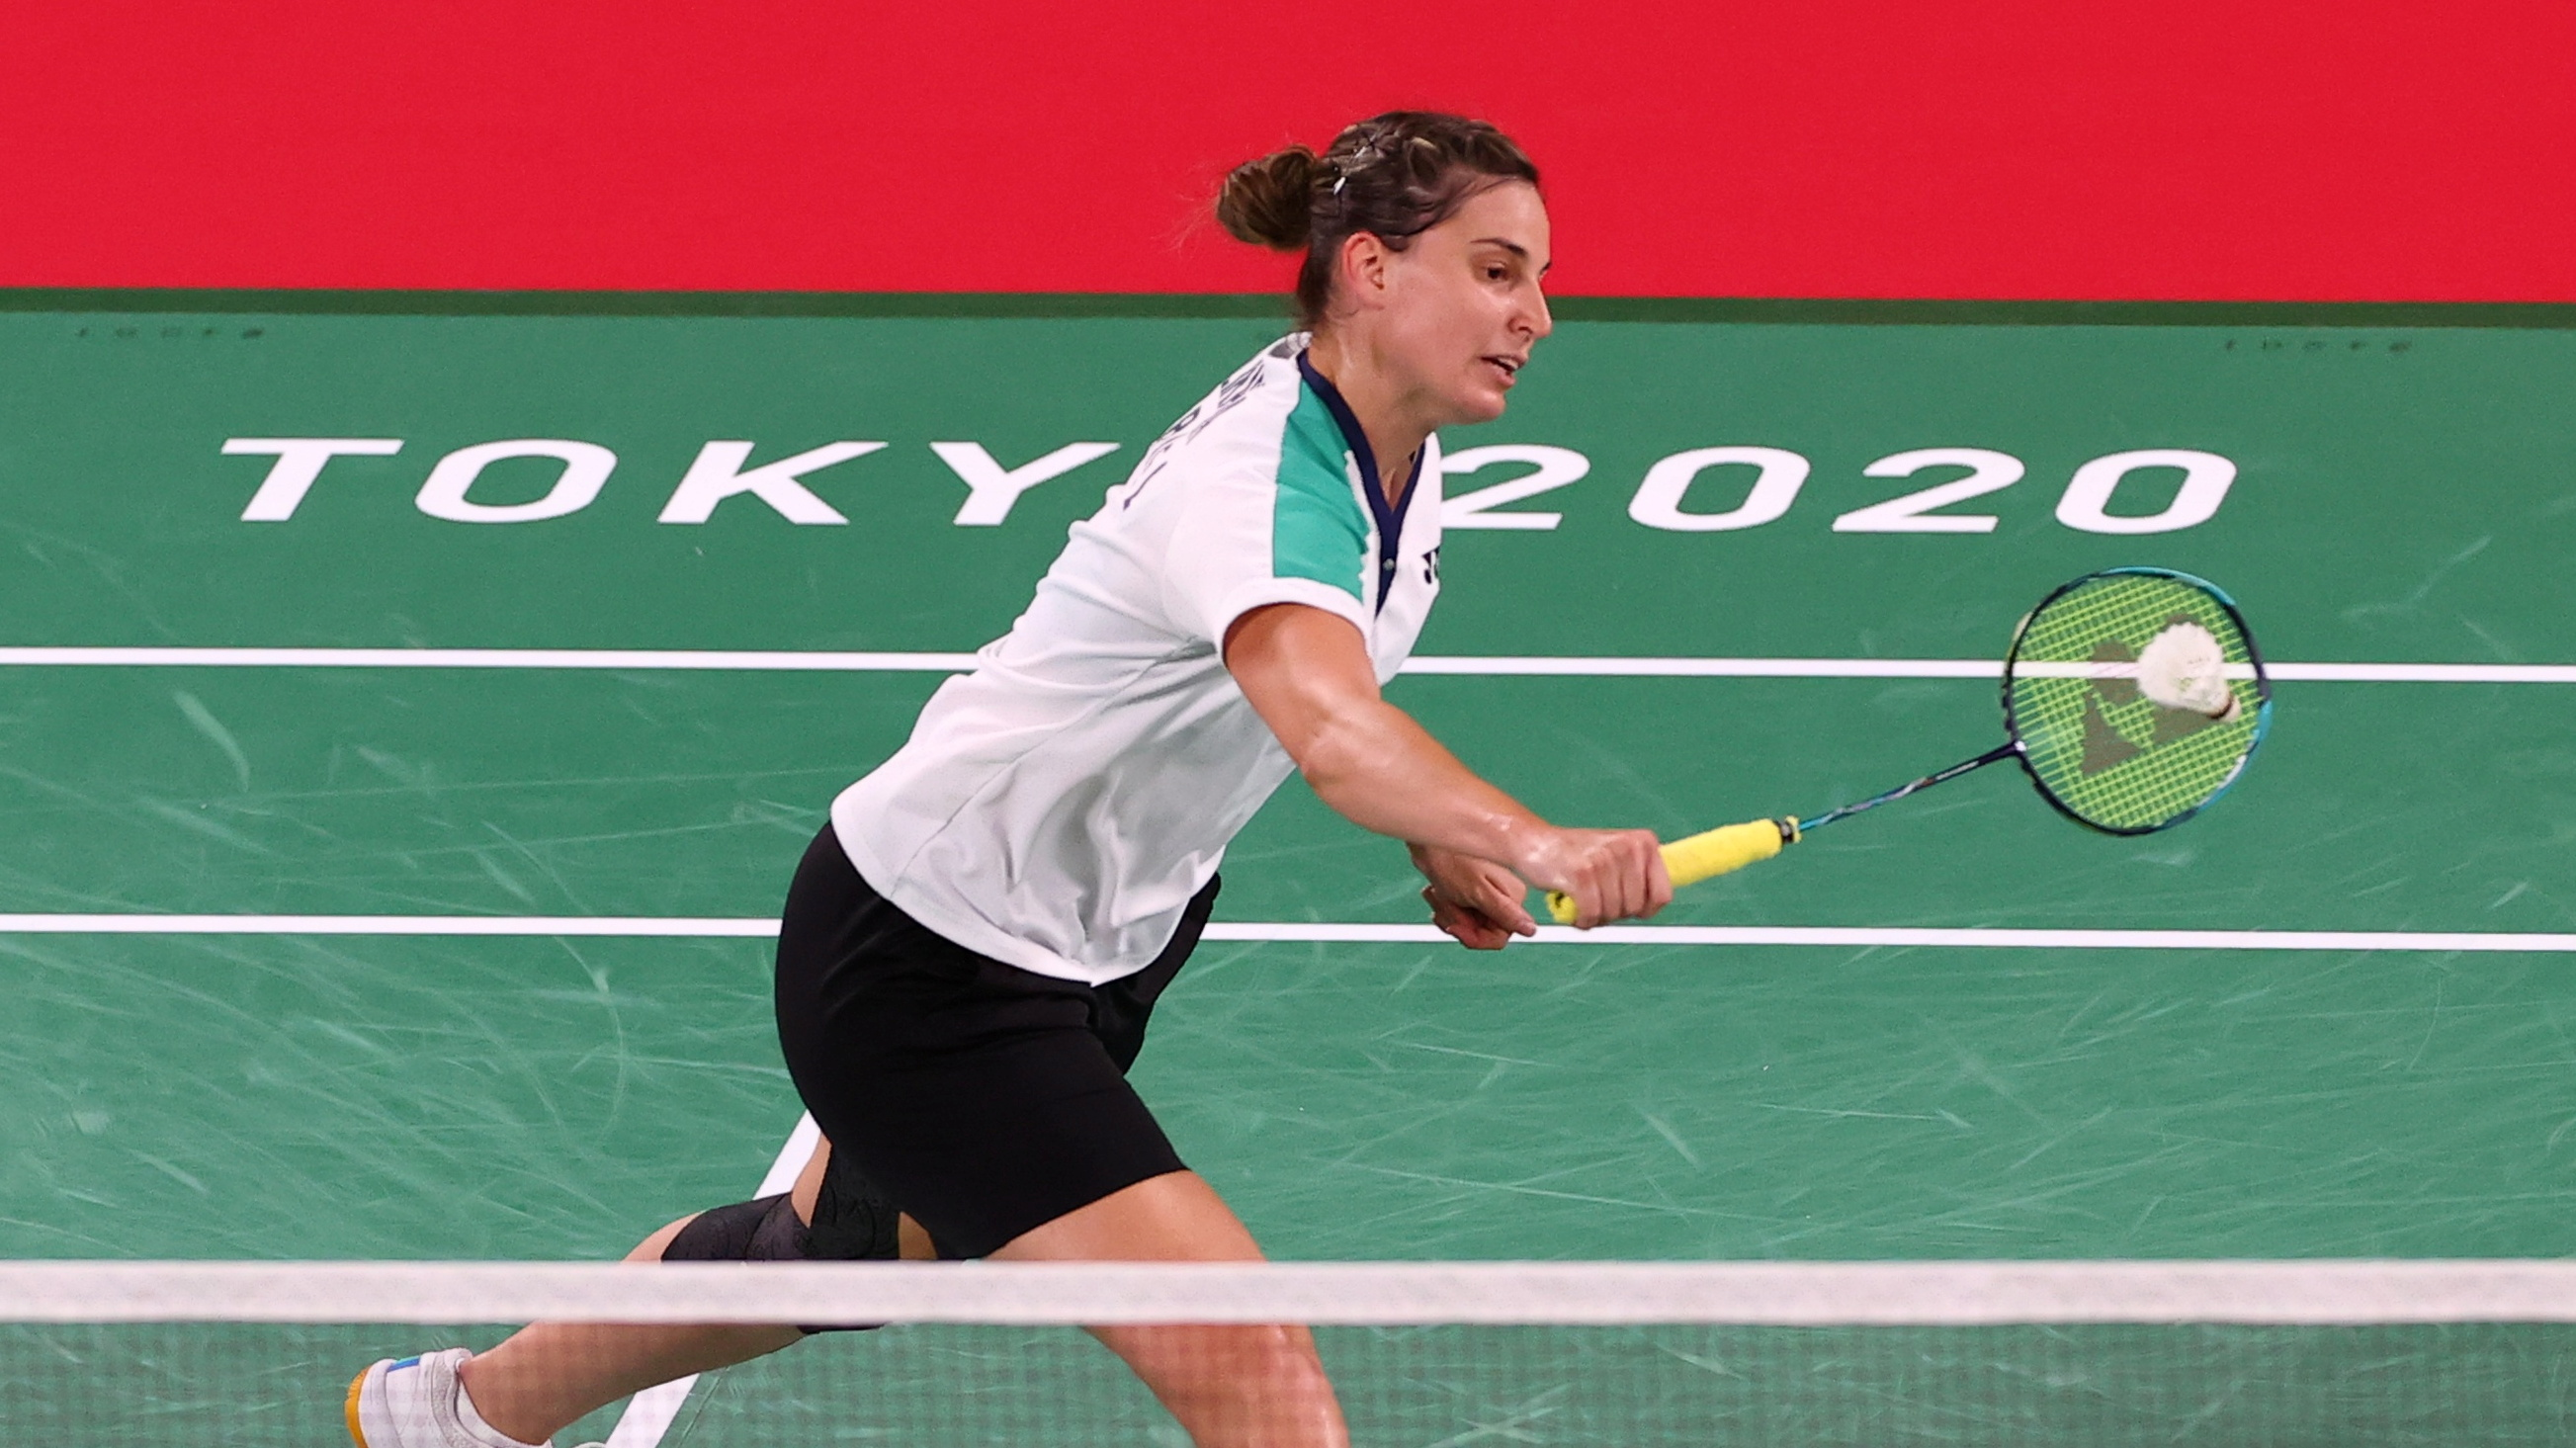 Tokyo 2020 Olympics - Badminton - Women's Singles - Group Stage - MFS - Musashino Forest Sport Plaza, Tokyo, Japan – July 25, 2021. Ksenia Polikarpova of Israel in action during the match against P.V. Sindhu of India. REUTERS/Leonhard Foeger